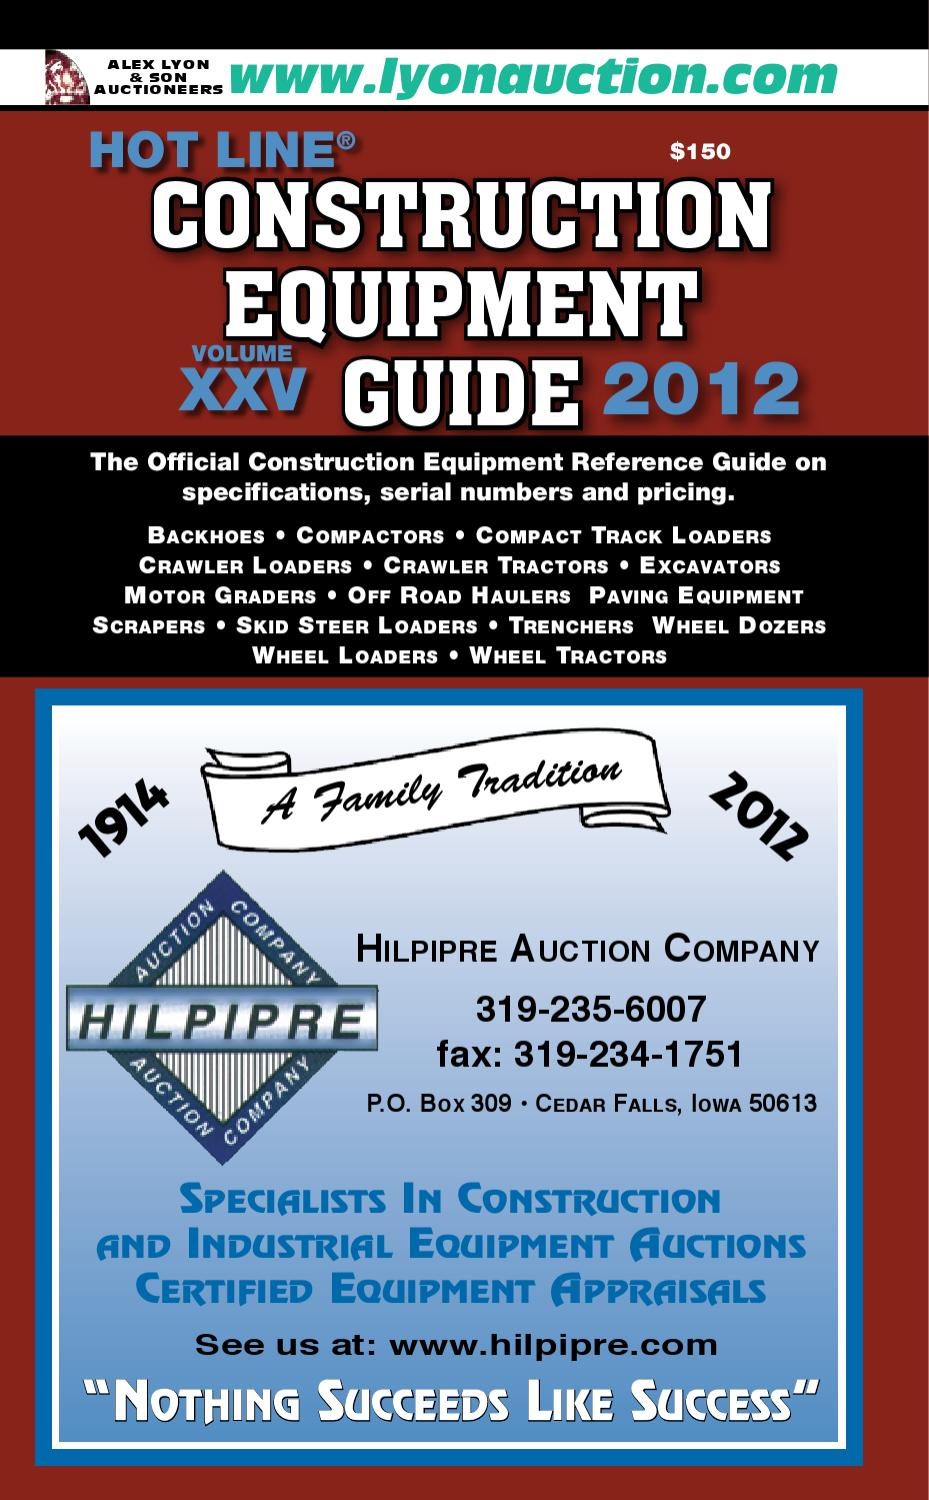 Construction Equipment Guide Sample by Heartland Communications